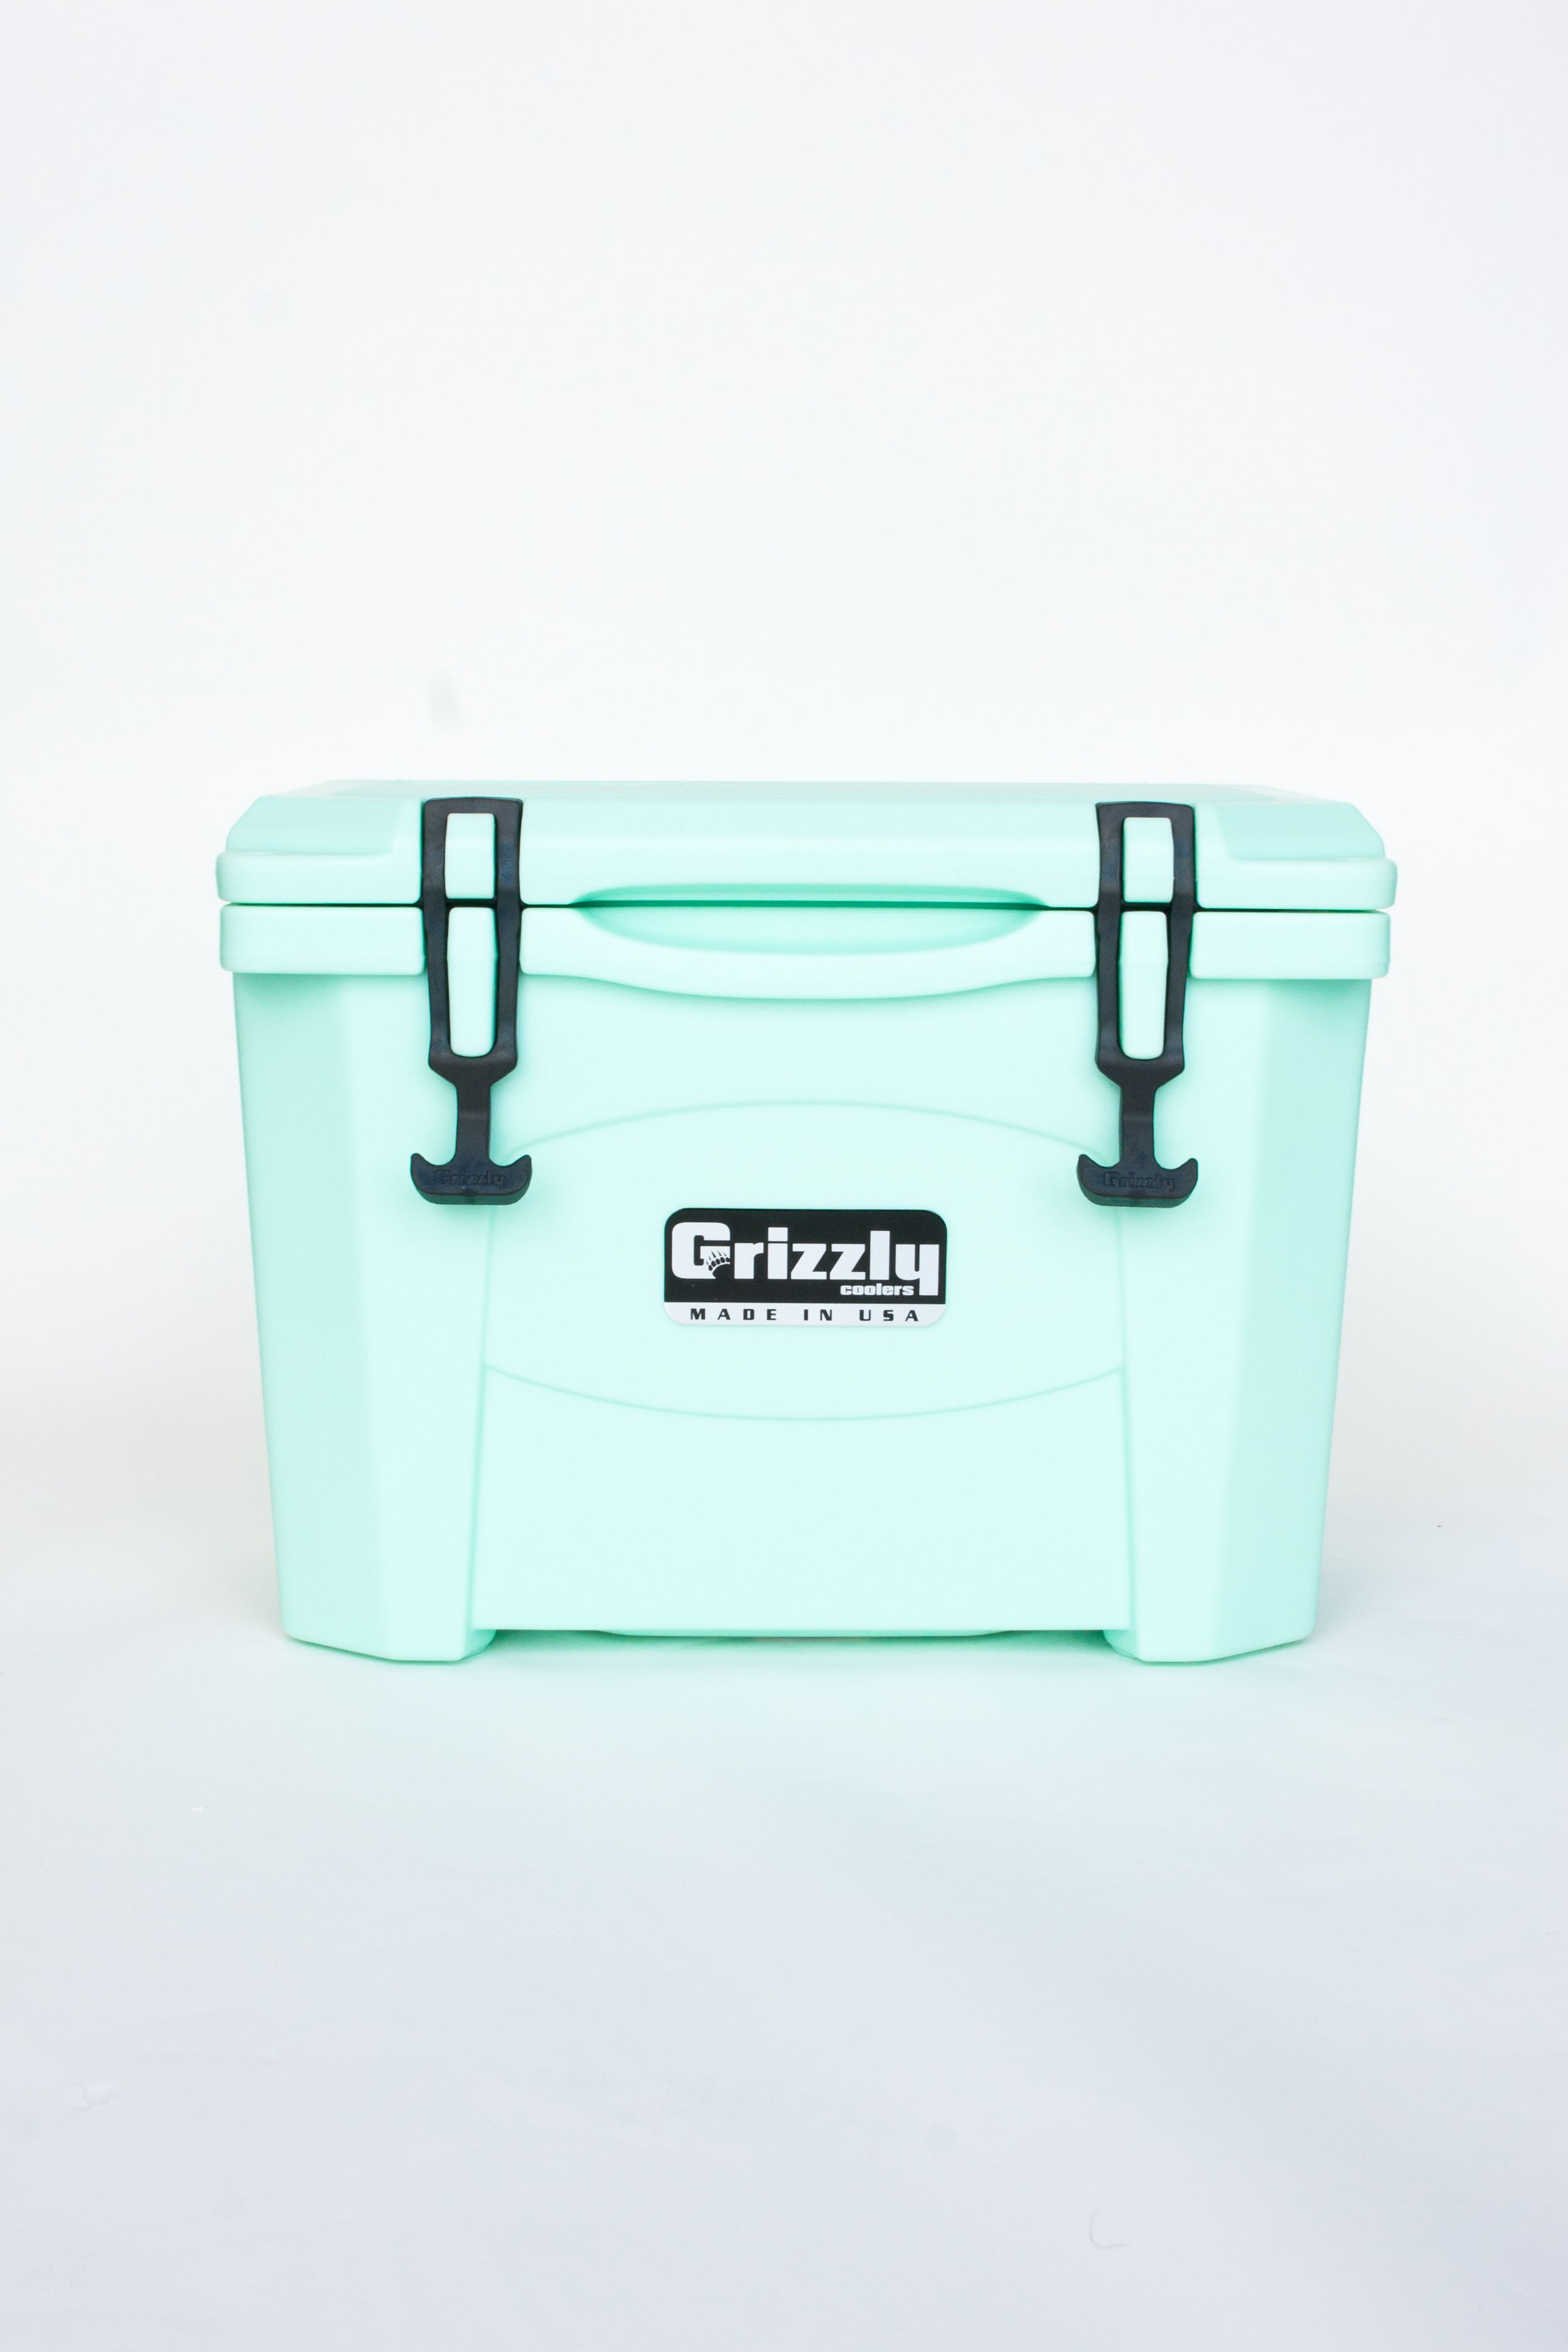 Grizzly 15 Quart Cooler – Seafoam